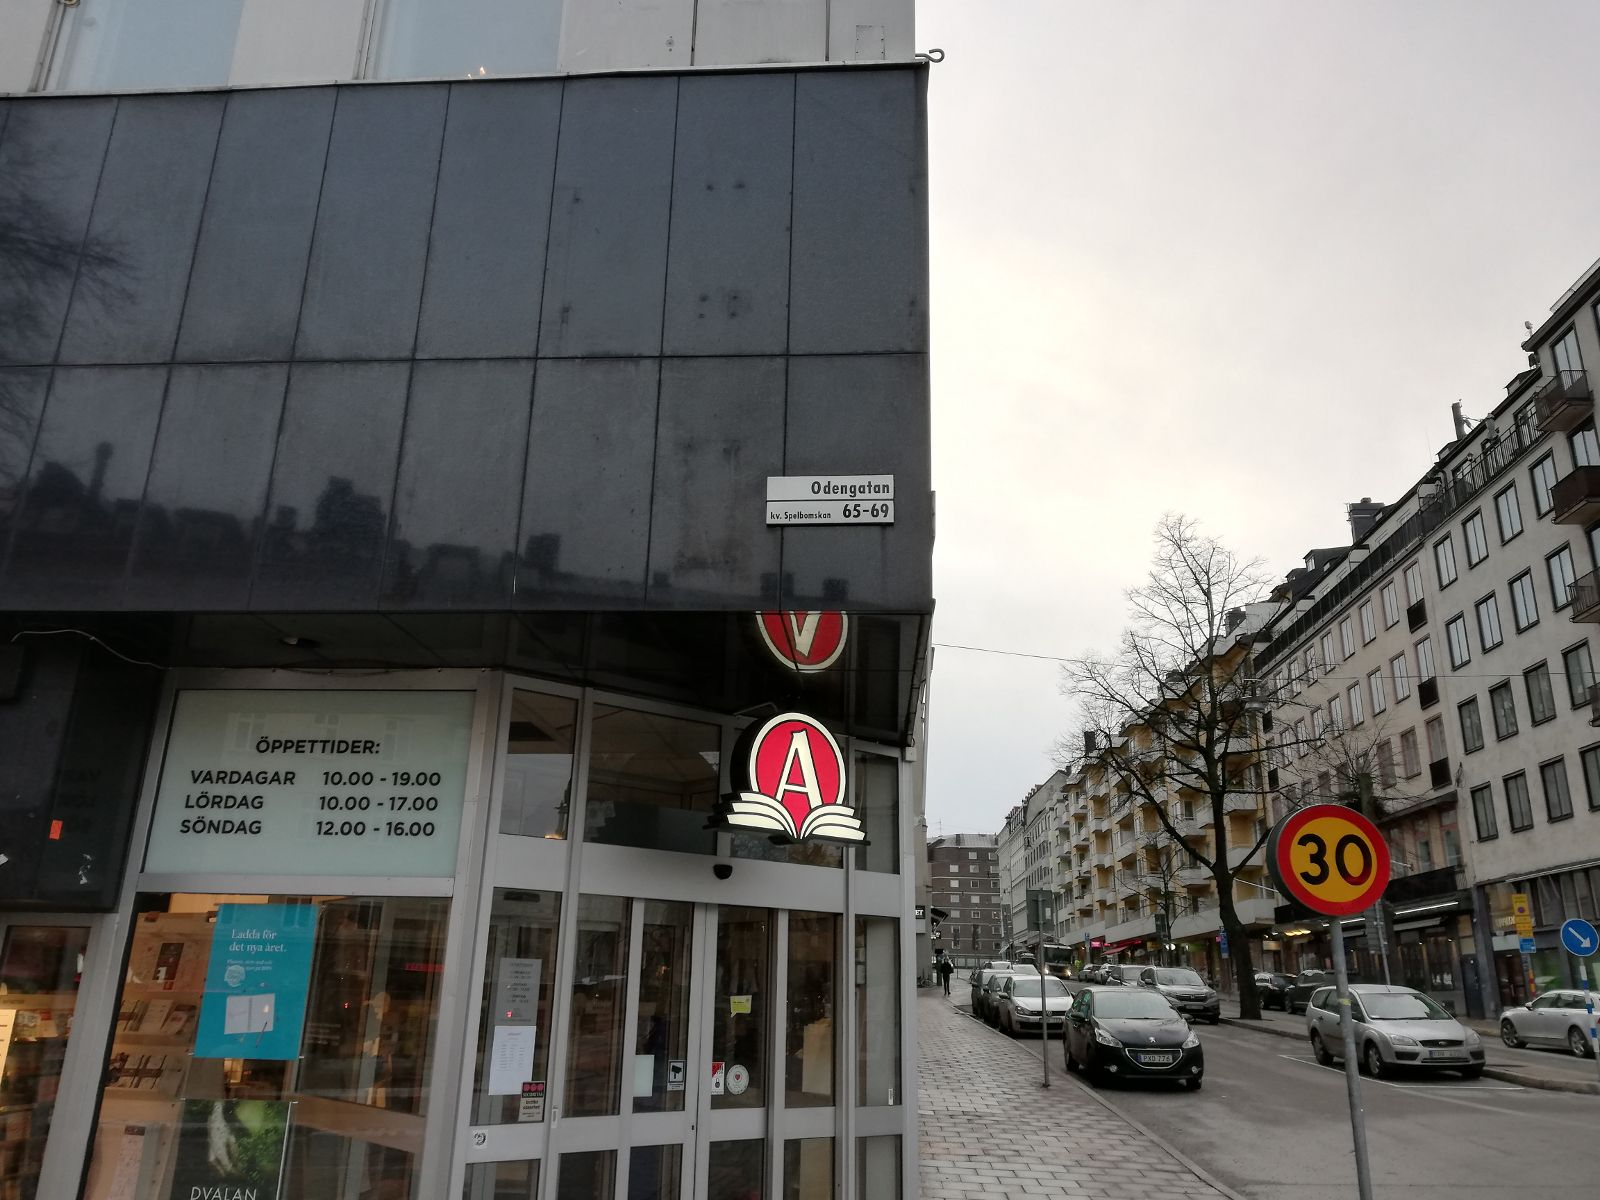 odenplan coworking space